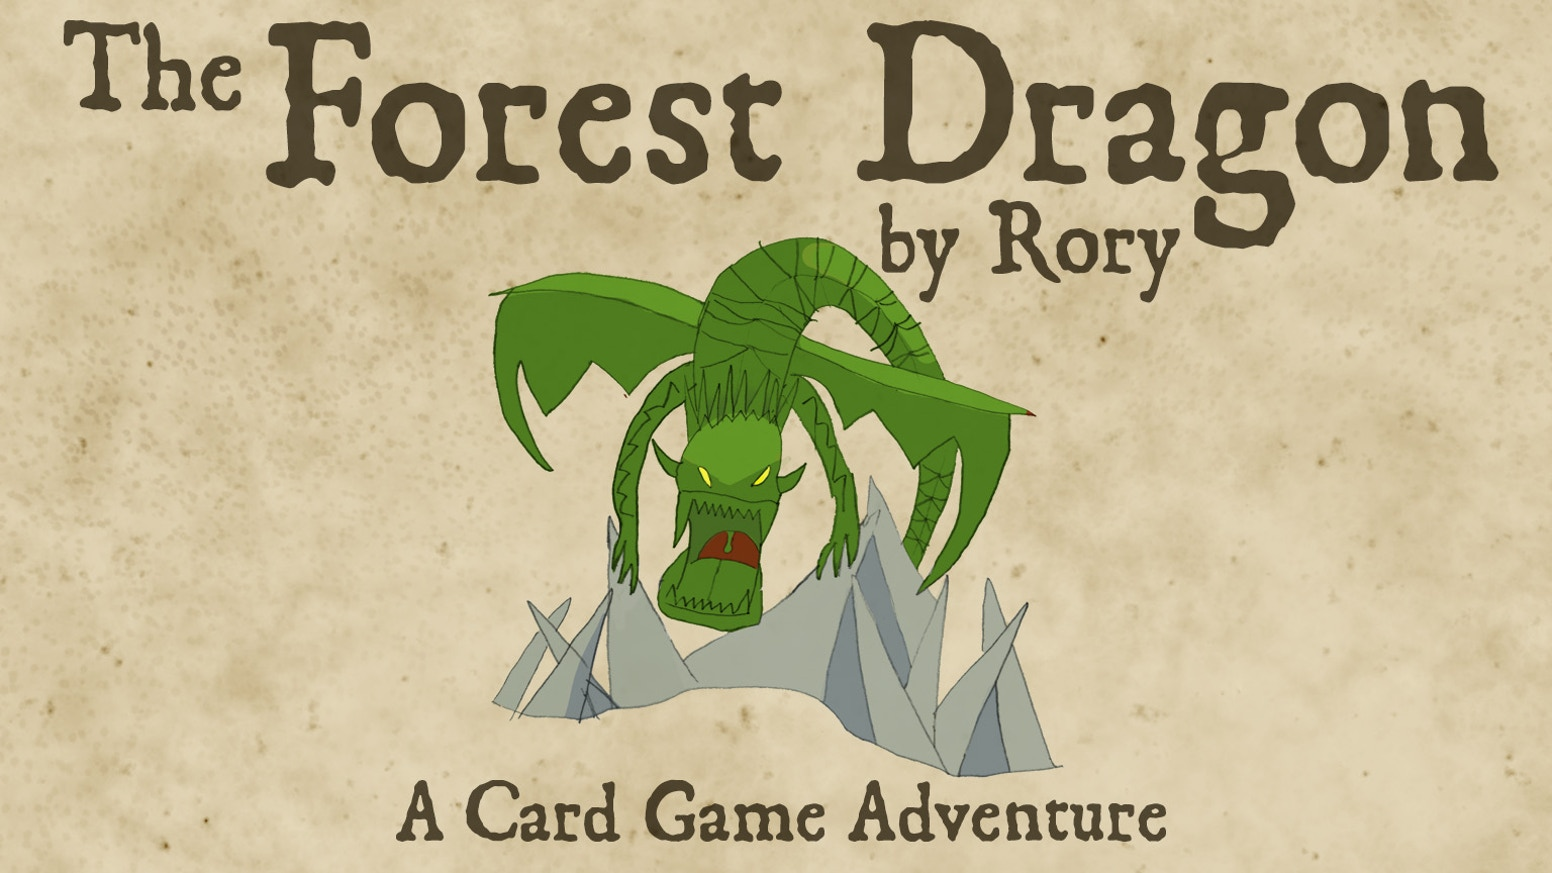 Designed by Rory, aged 9, The Forest Dragon is a fast and fun card game, as well as a journey for this fledgling designer.